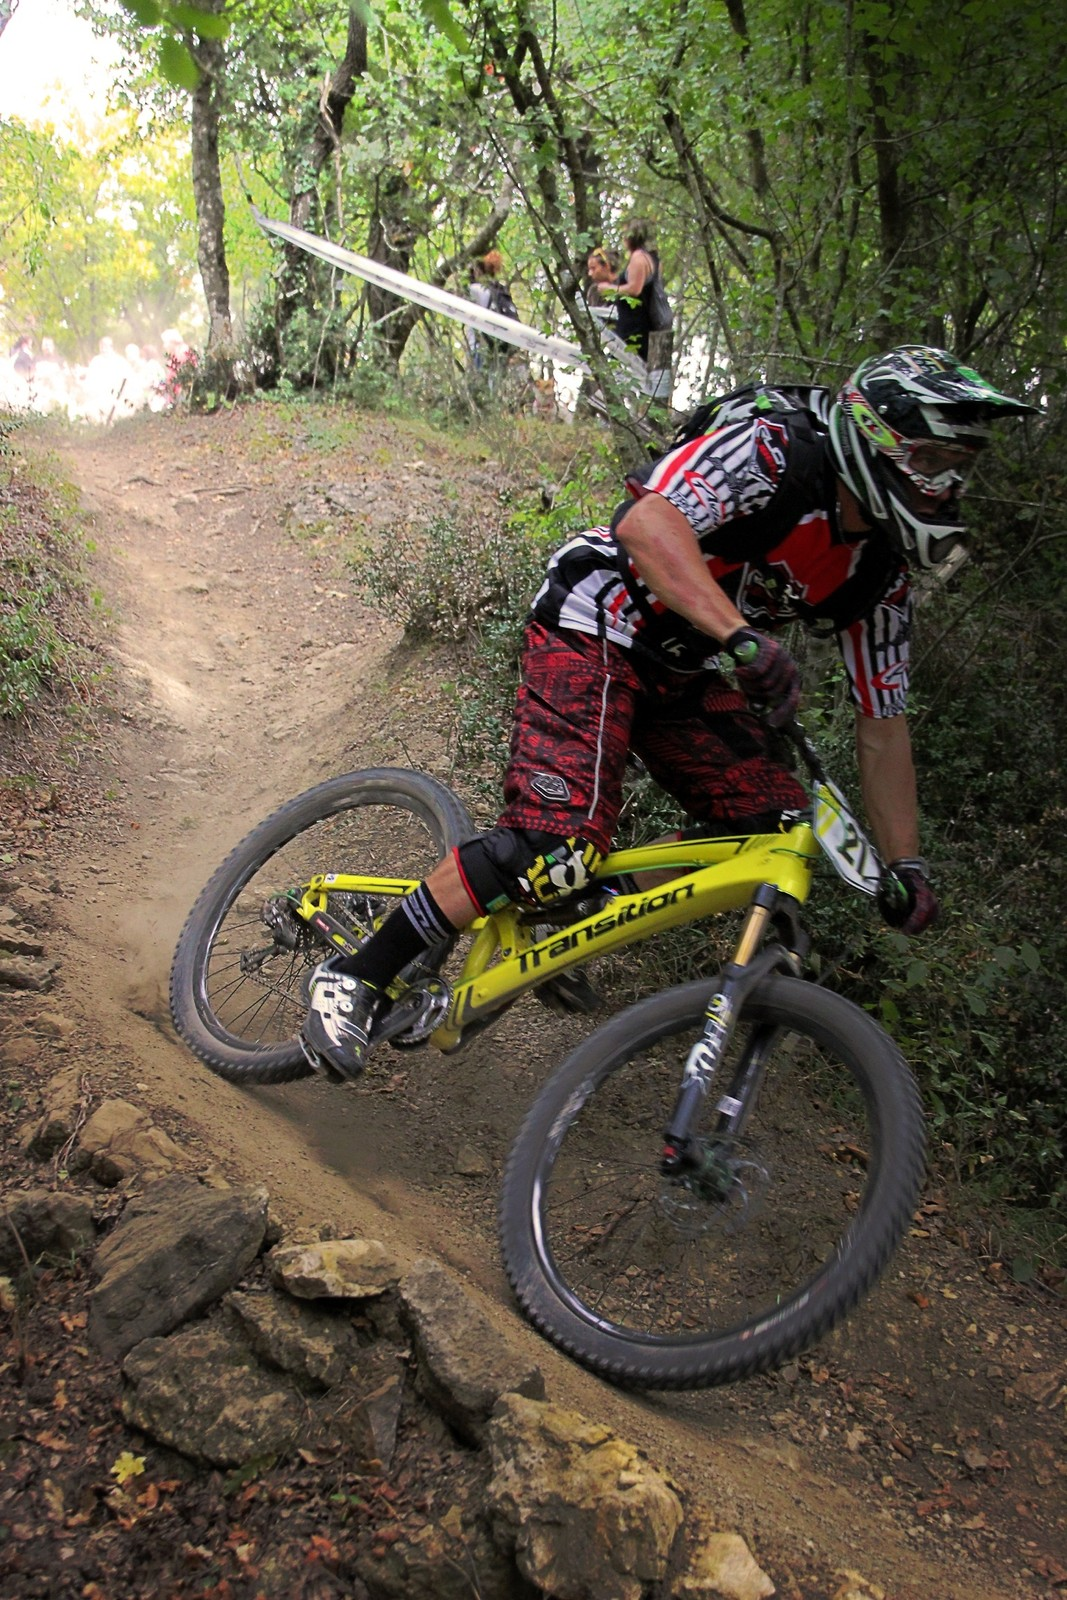 Super Enduro Tolfa 04 - Ruggero - Mountain Biking Pictures - Vital MTB